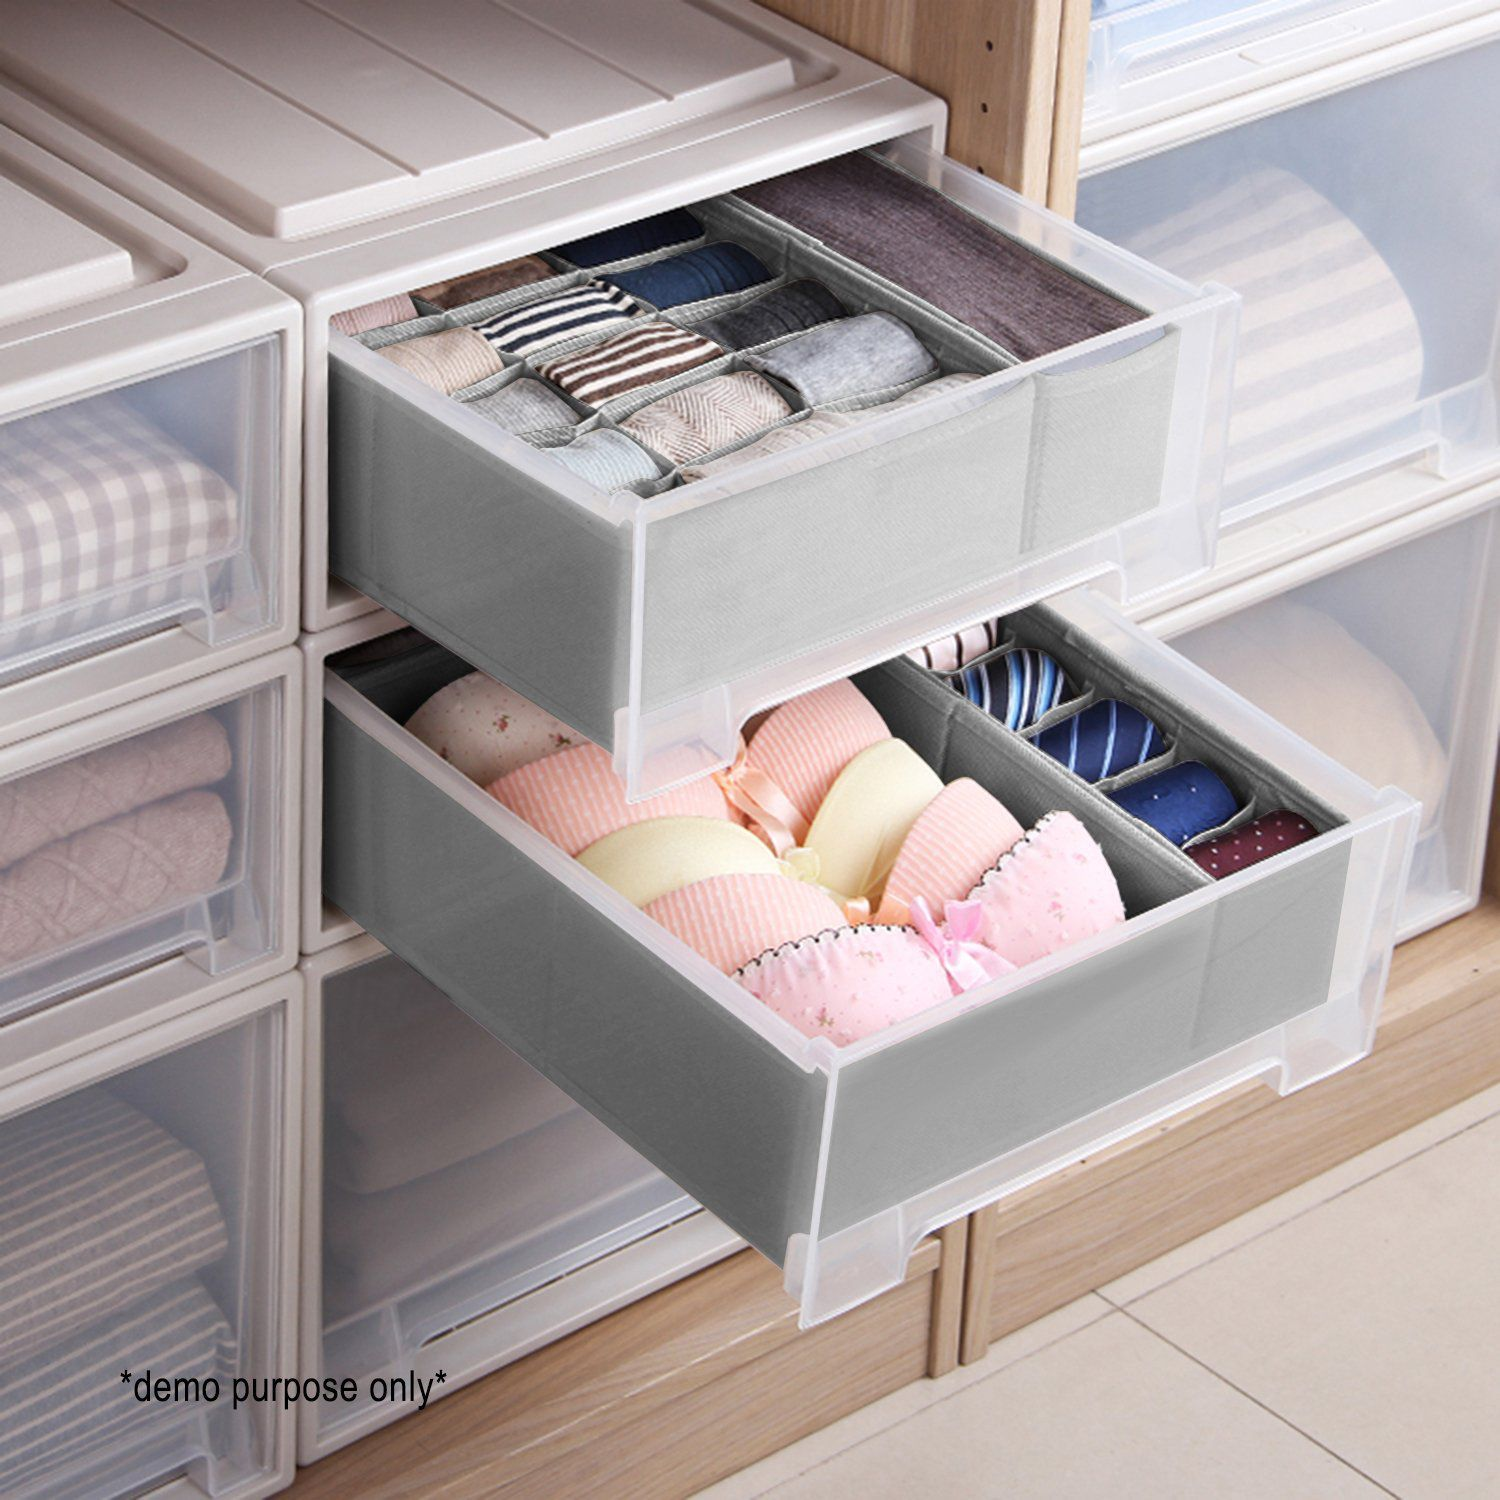 Use Drawer Organizers For Socks And Bras